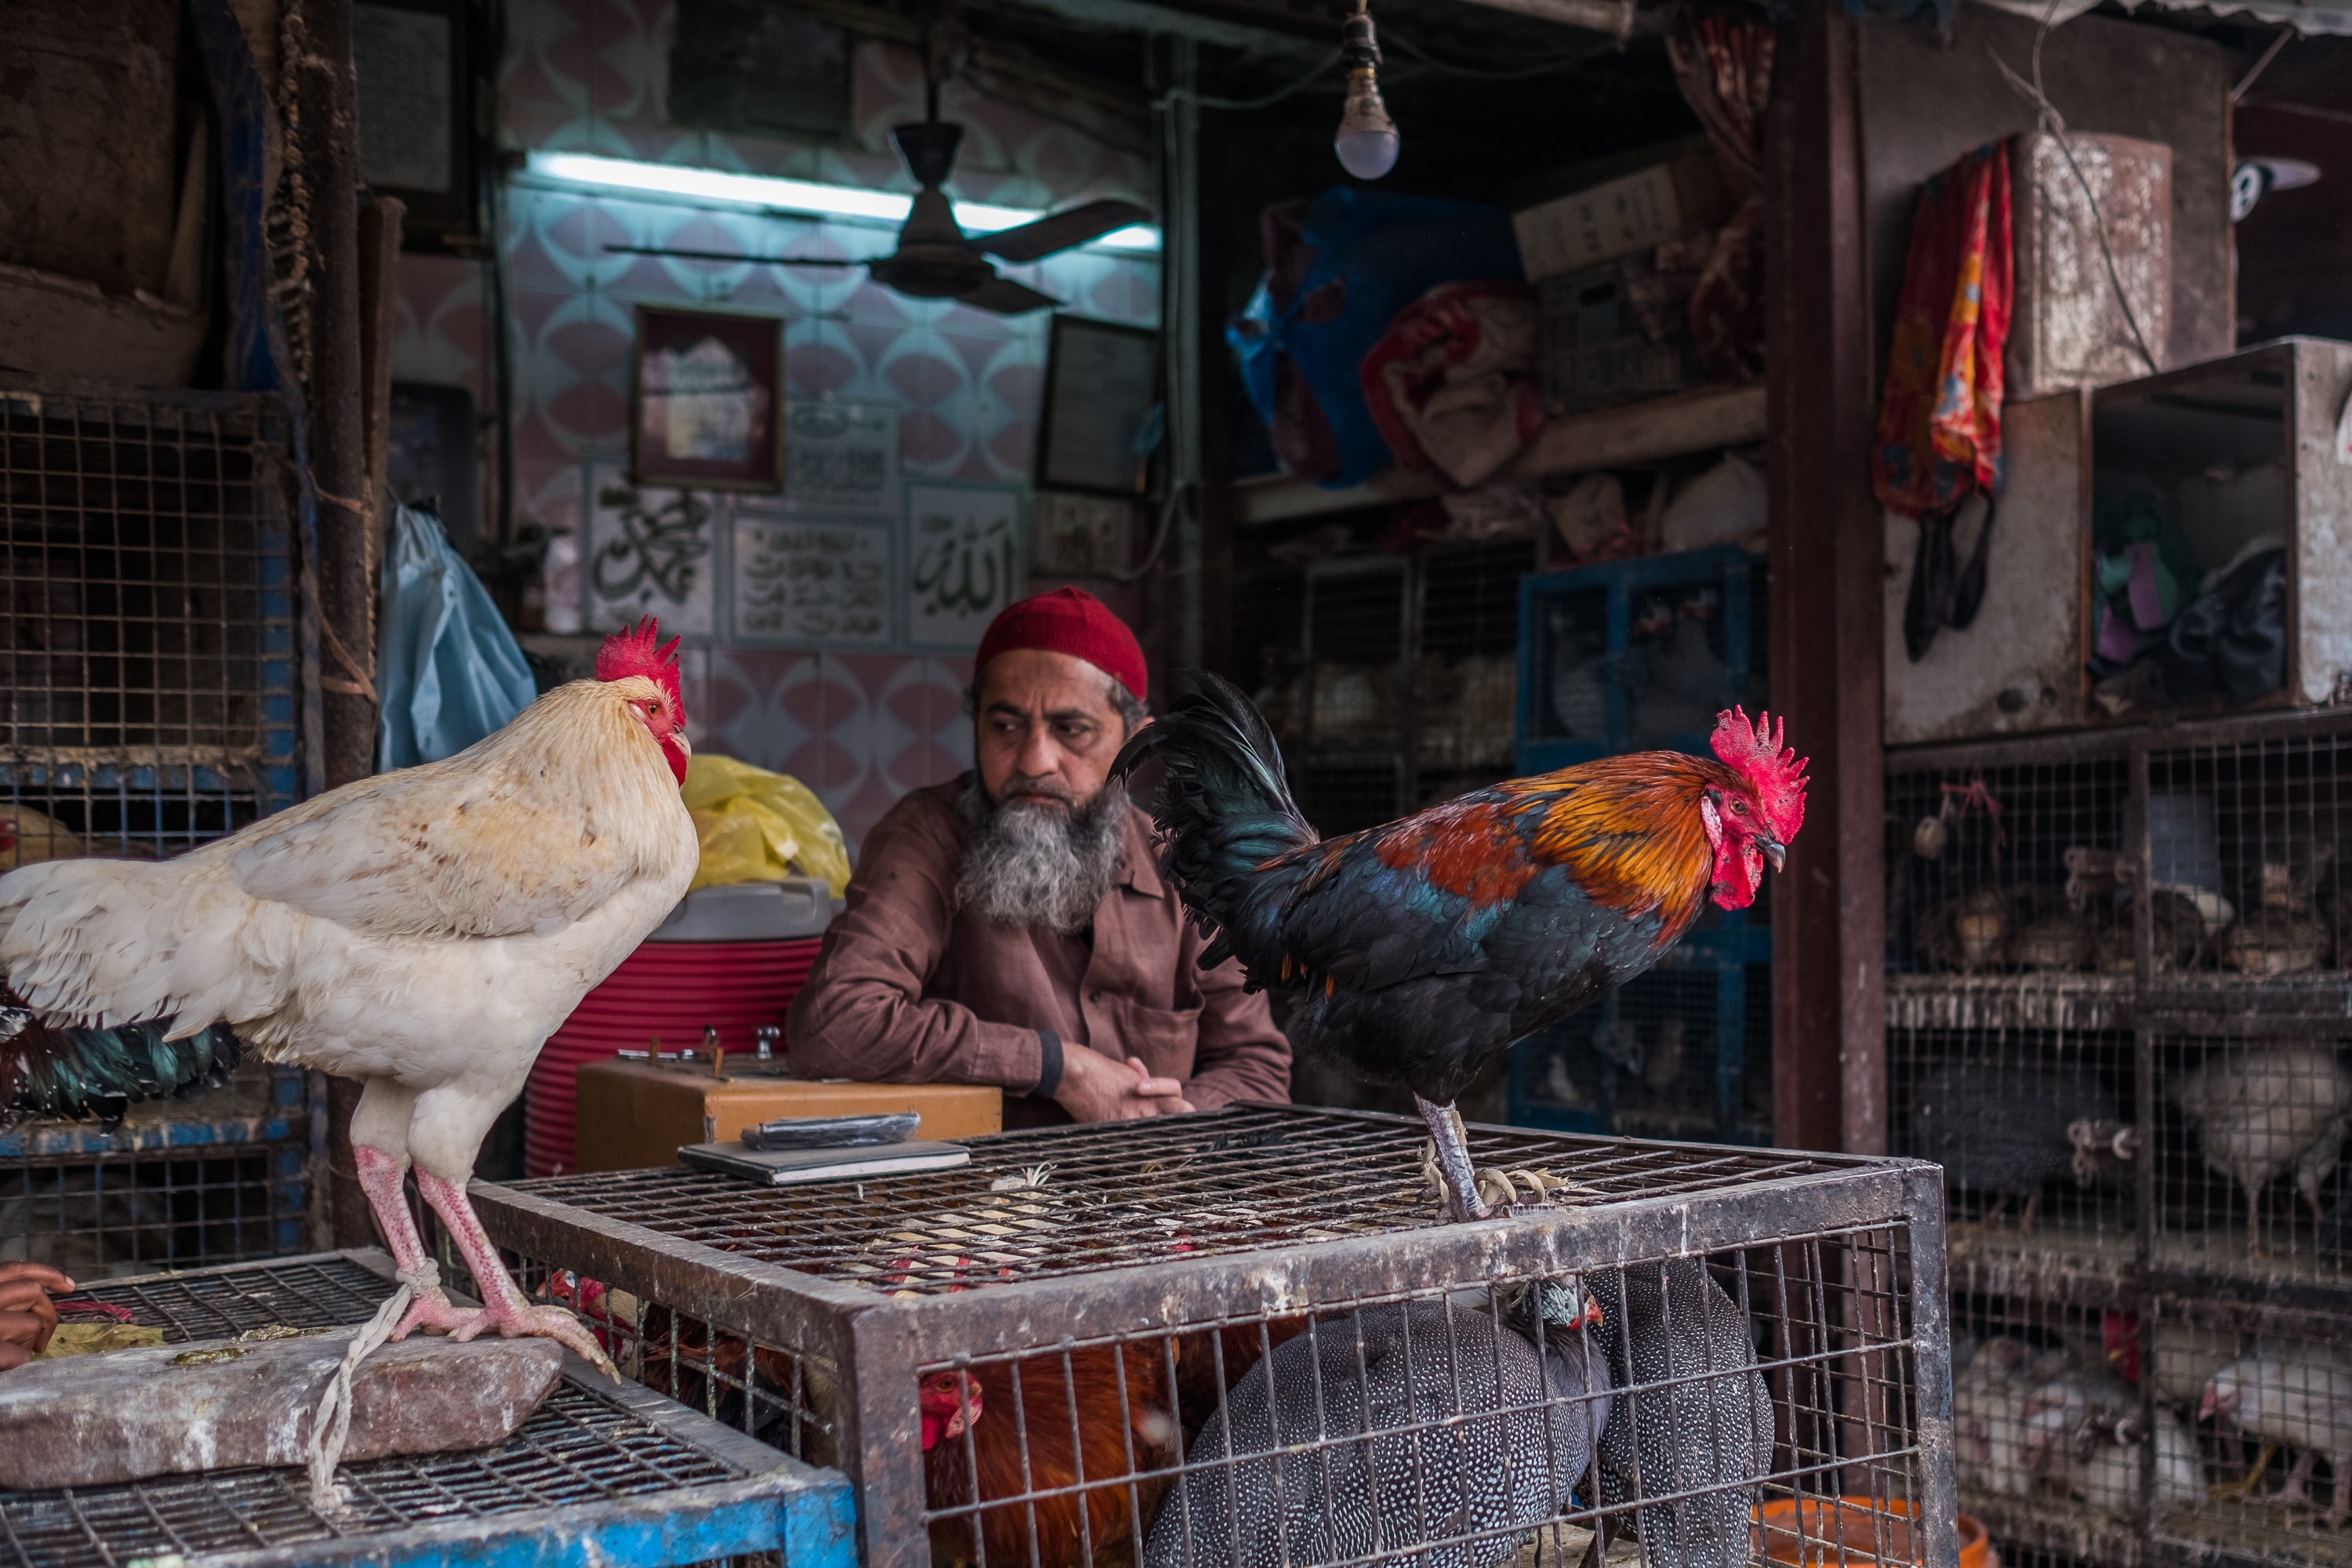 two roosters on pet crates in front of man in red cap during daytime